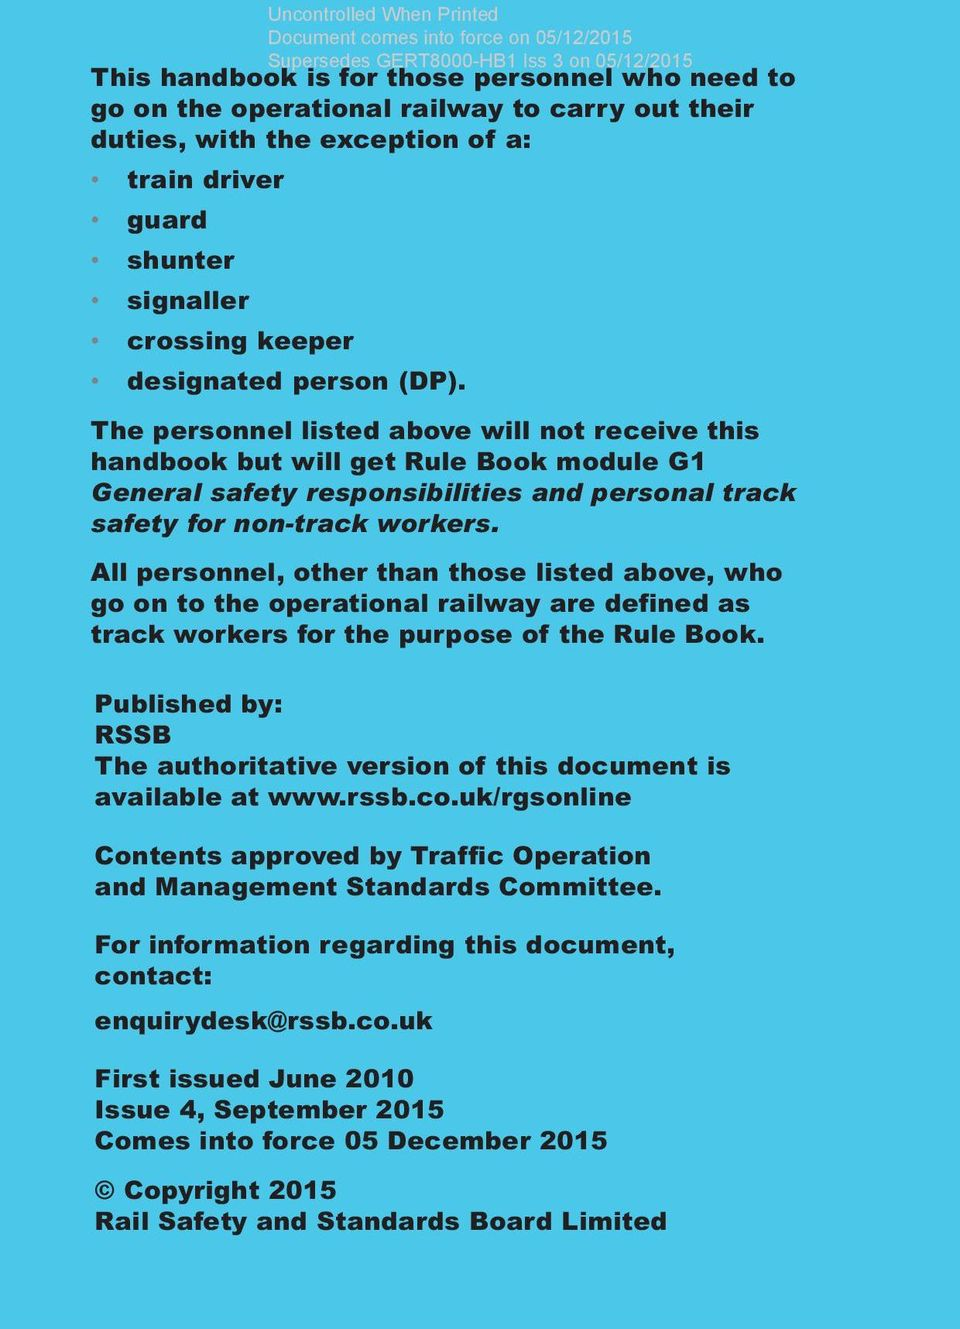 All personnel, other than those listed above, who go on to the operational railway are defined as track workers for the purpose of the Rule Book.